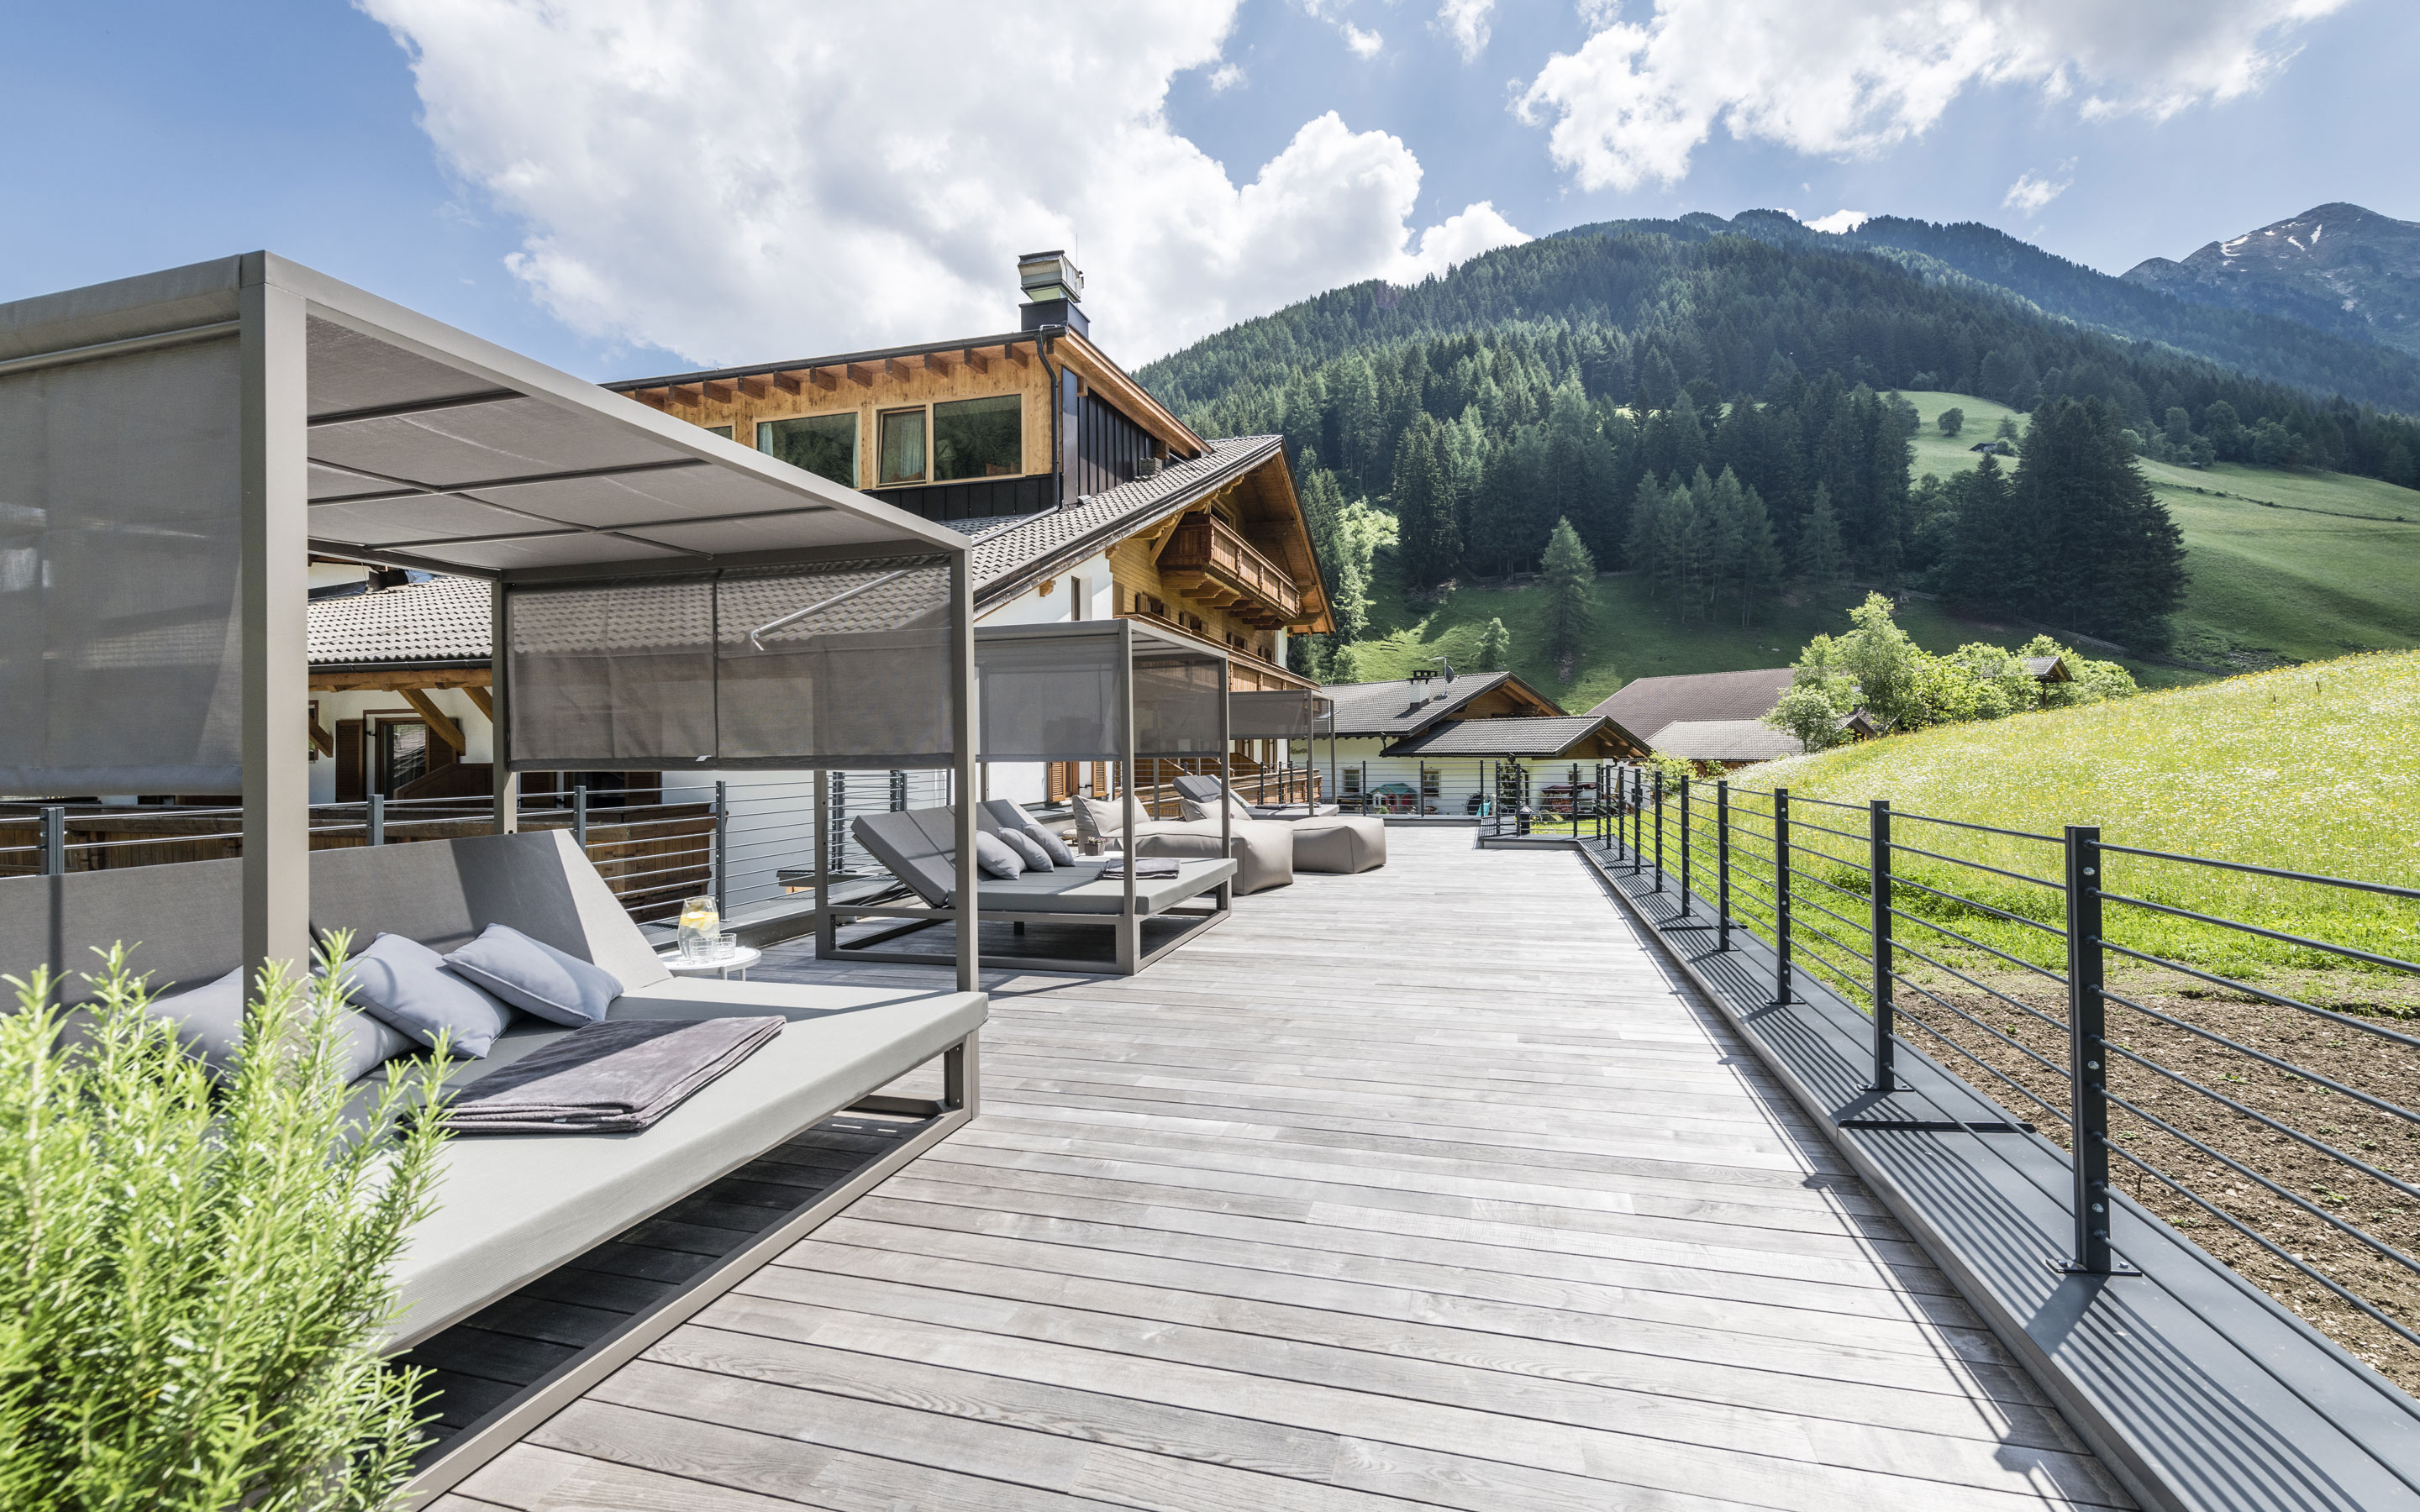 A Hotel With Sauna In South Tyrol The Jaufentalerhof